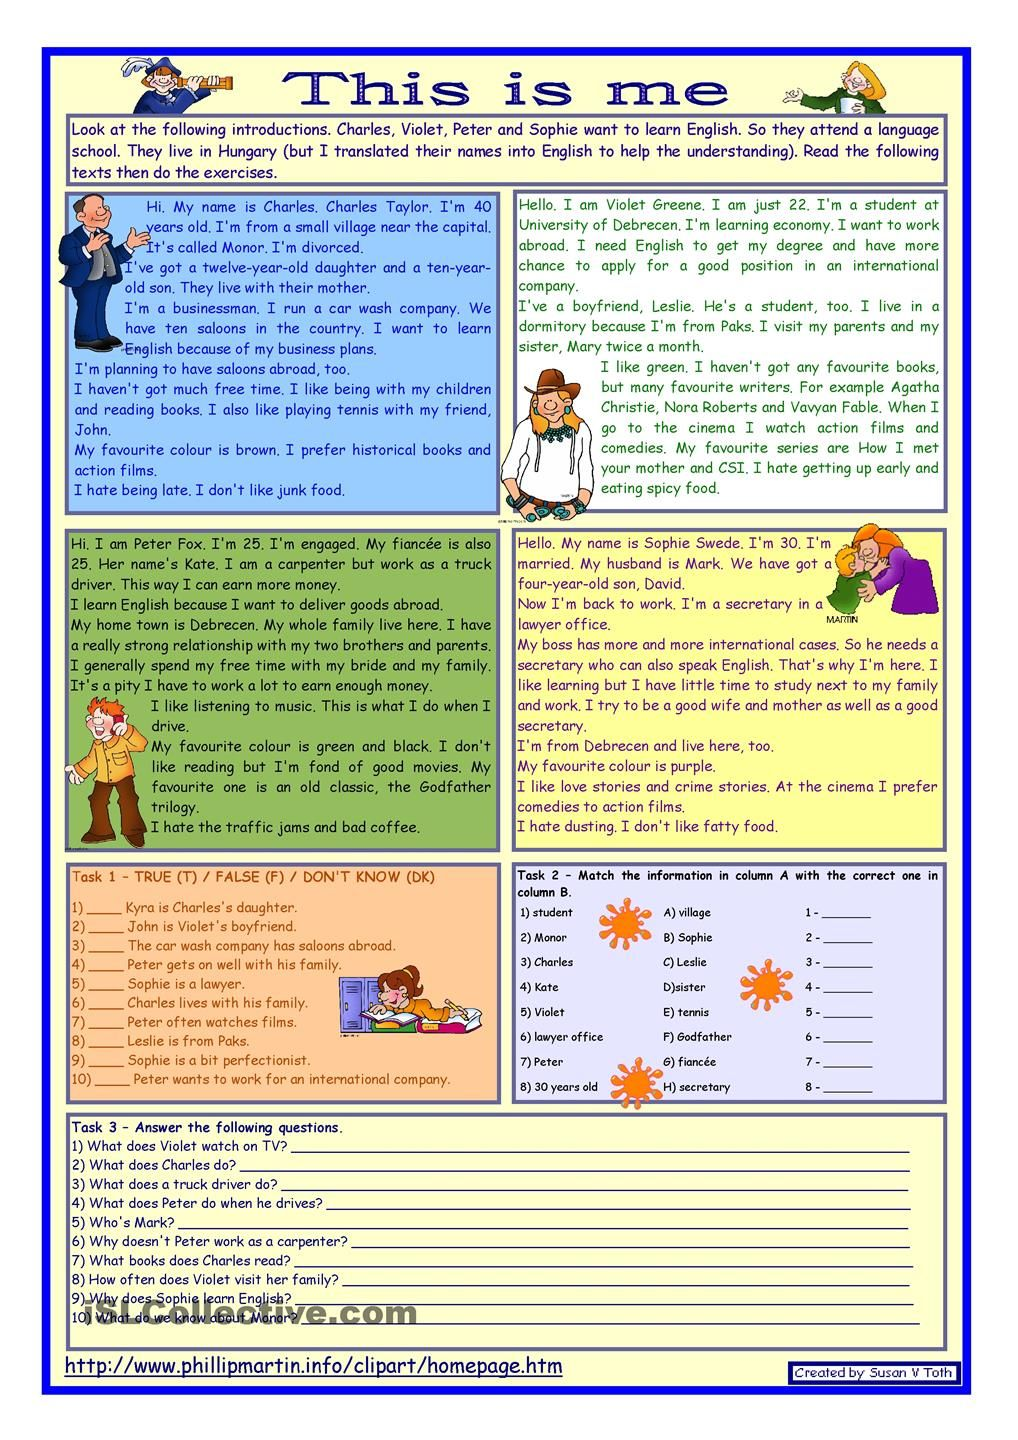 Free esl reading comprehension worksheets for adults